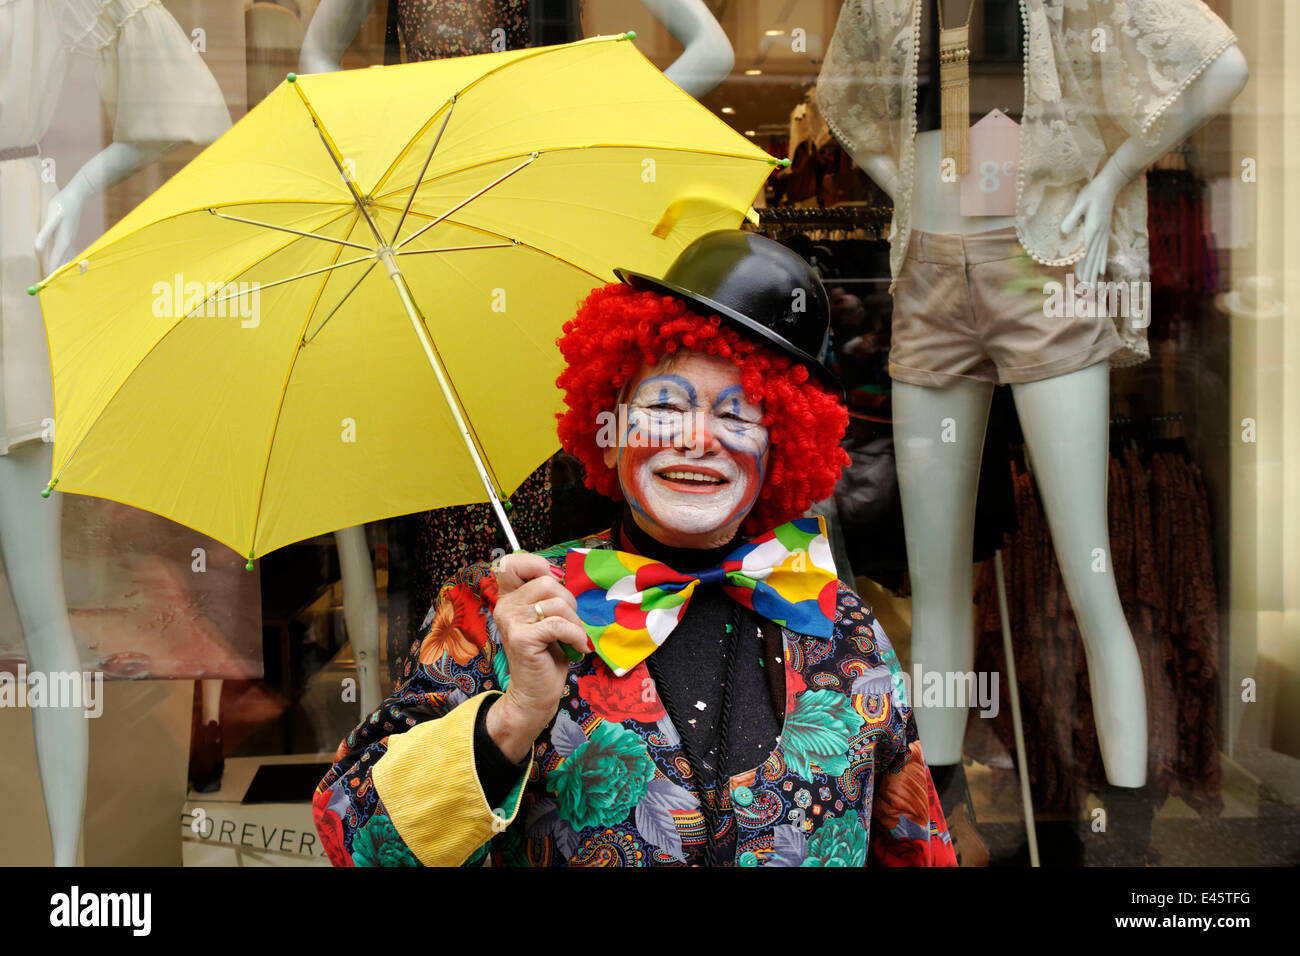 Lady clown holding yellow umbrella in front of fashion shop window, street party, Munich, Upper Bavaria, Germany, - Stock Image